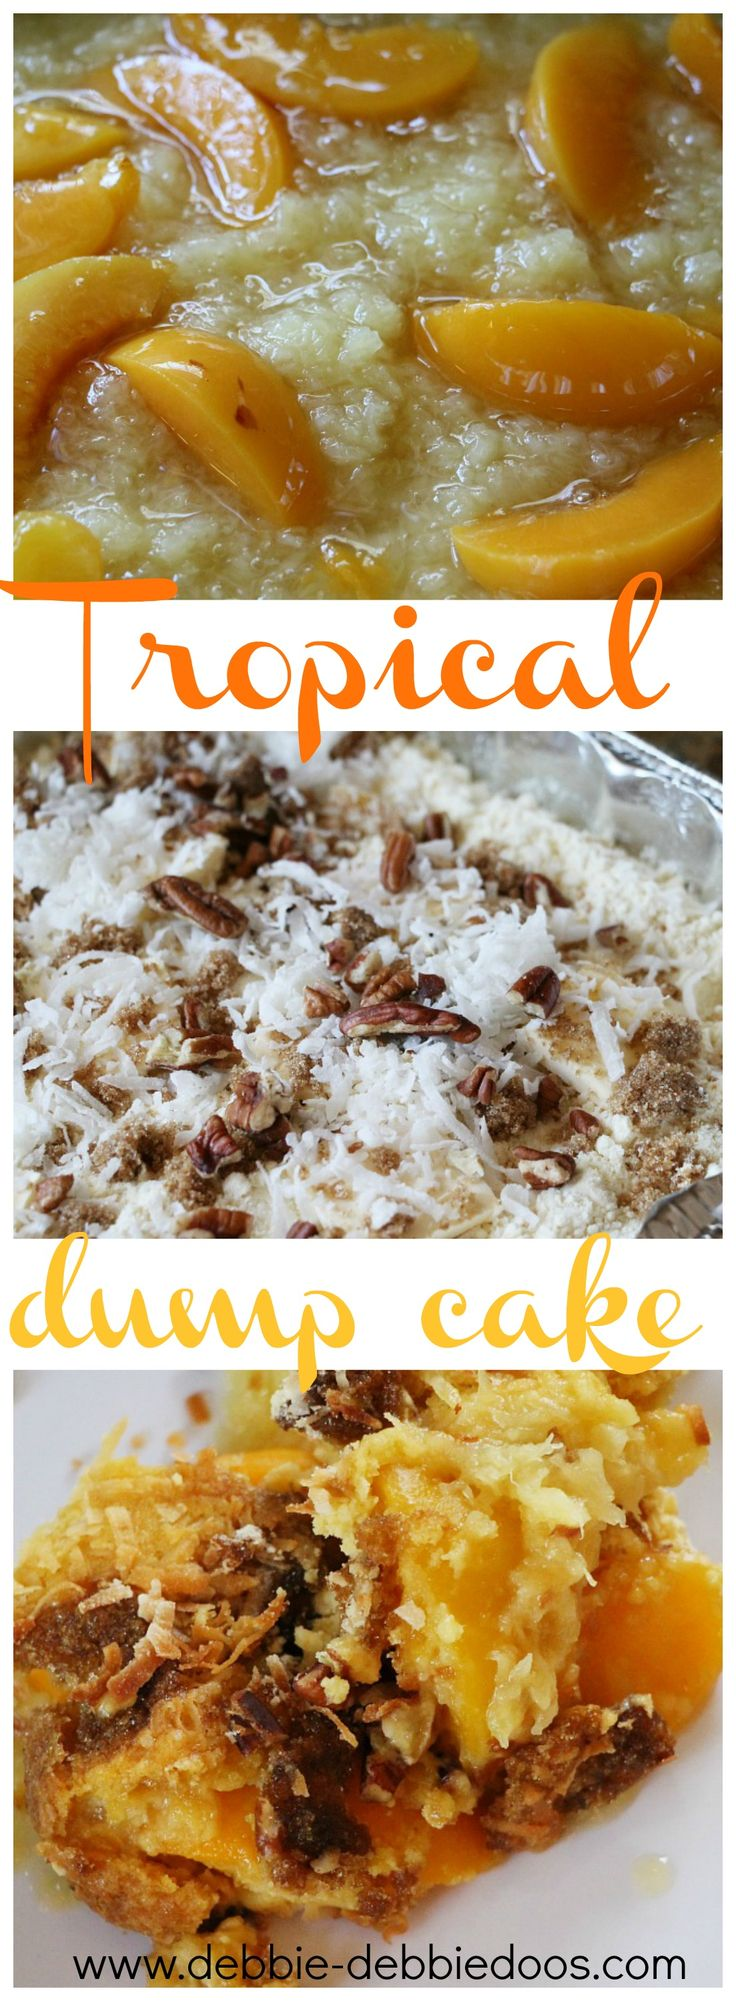 How to make a tropical dump cake with pineapple and peaches. You literally dump it all in. NO brainer dessert.